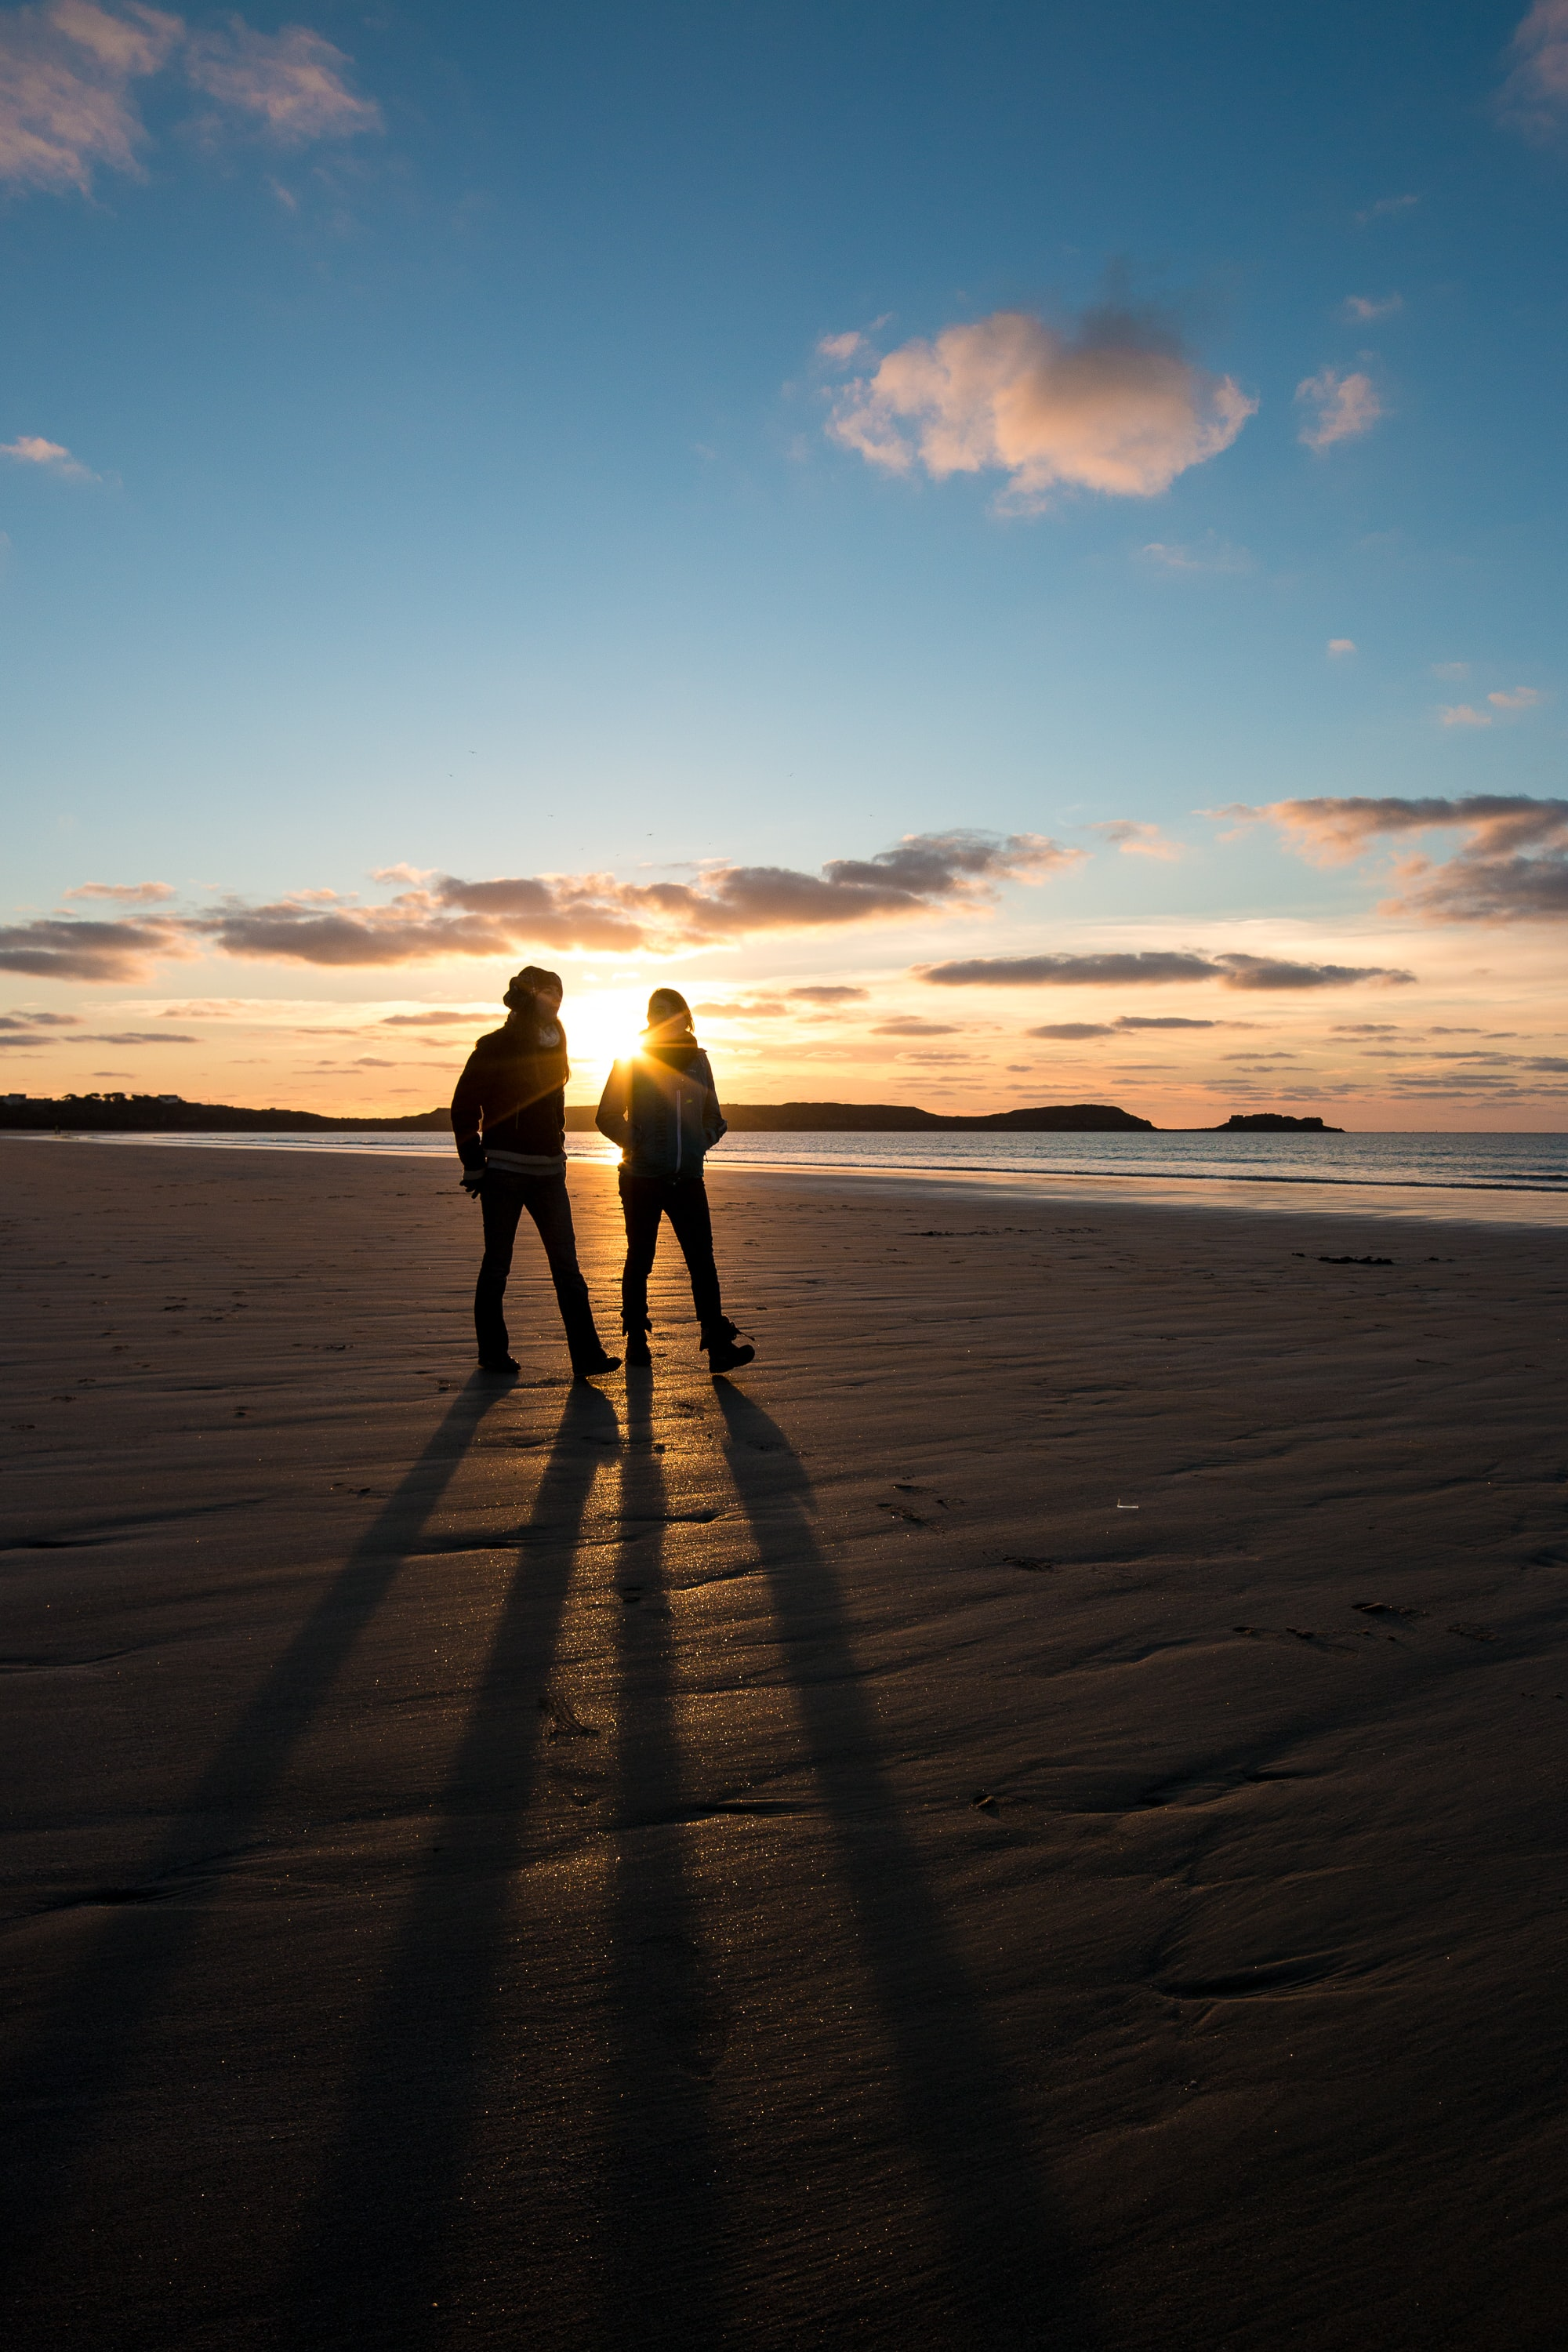 silhouette photo of two persons walking along seashore